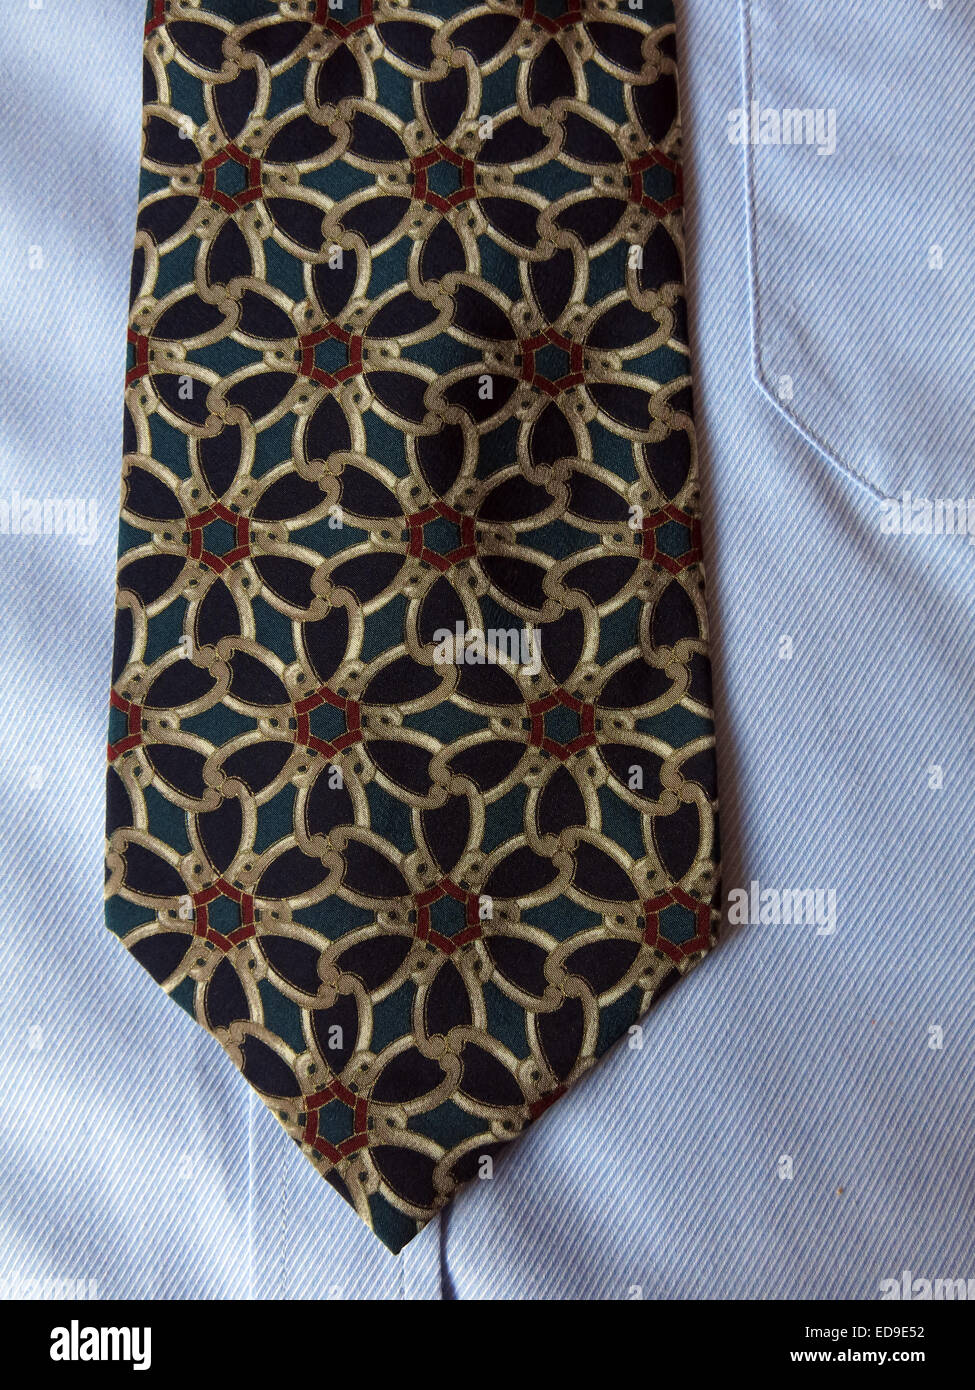 Interesting vintage Tie rack Charleston tie, male neckware in silk - Stock Image